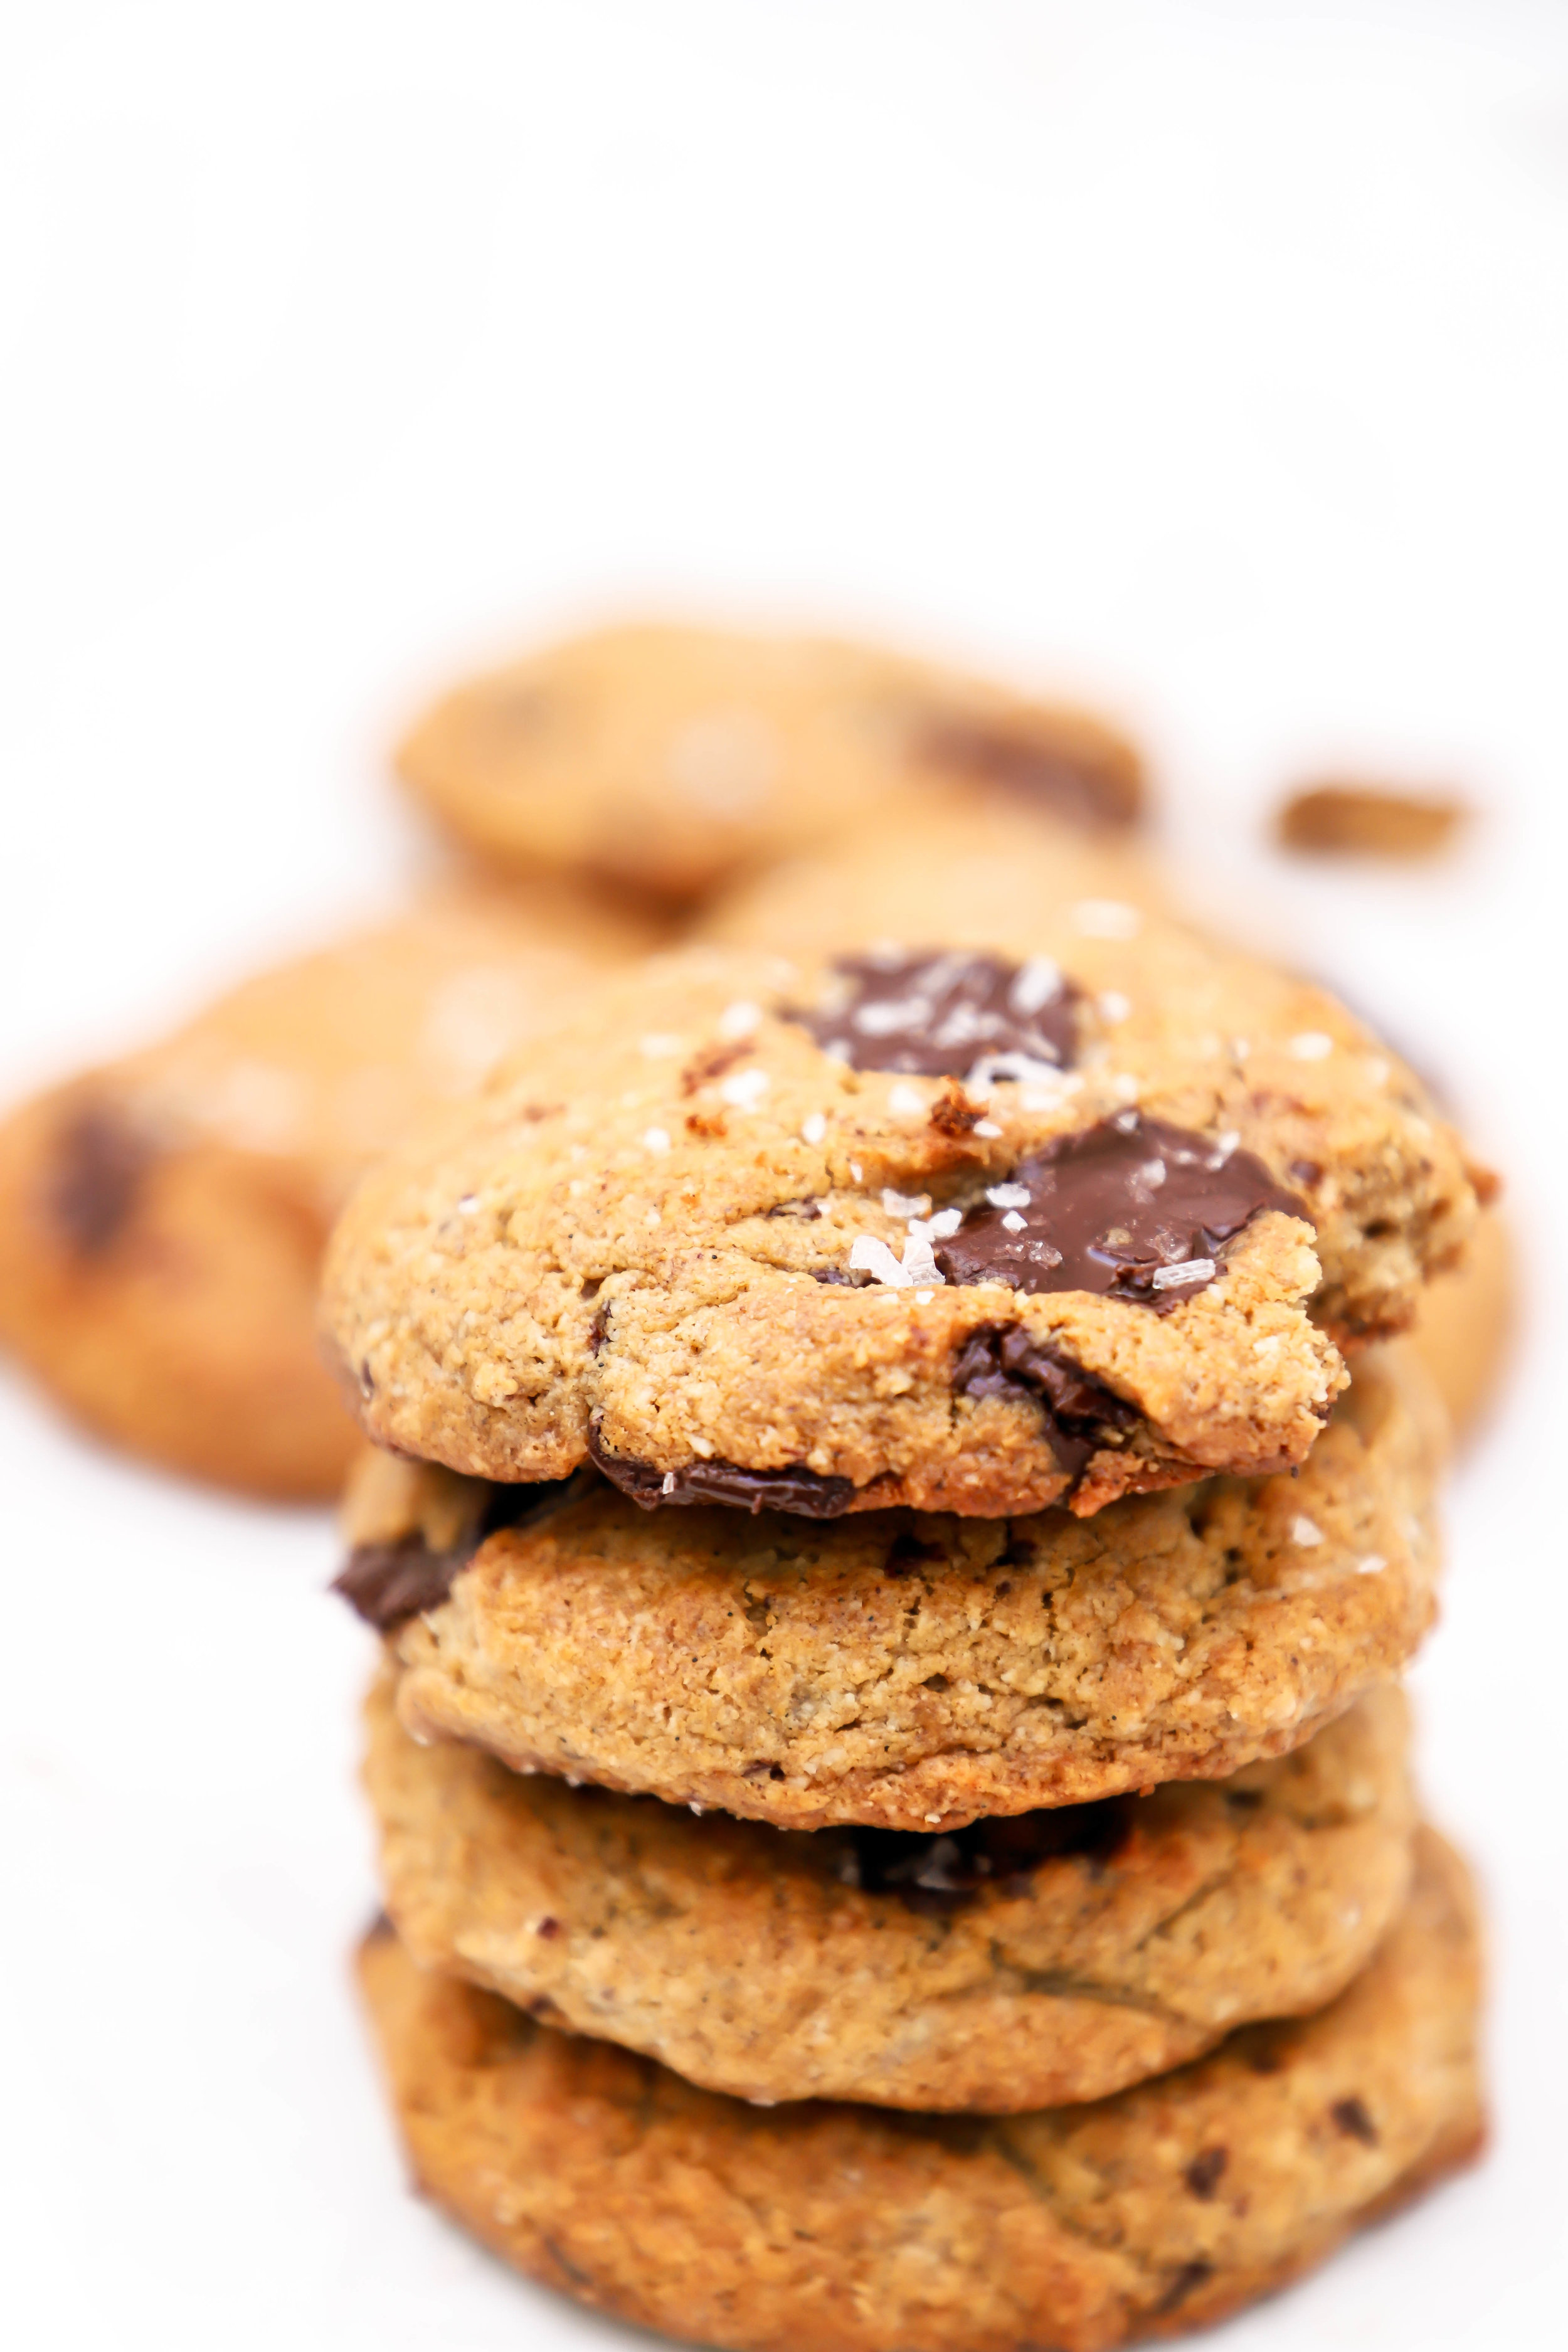 vegan and gluten-free chocolate chip cookies with tahini and coconut oil, stacked on top of each other